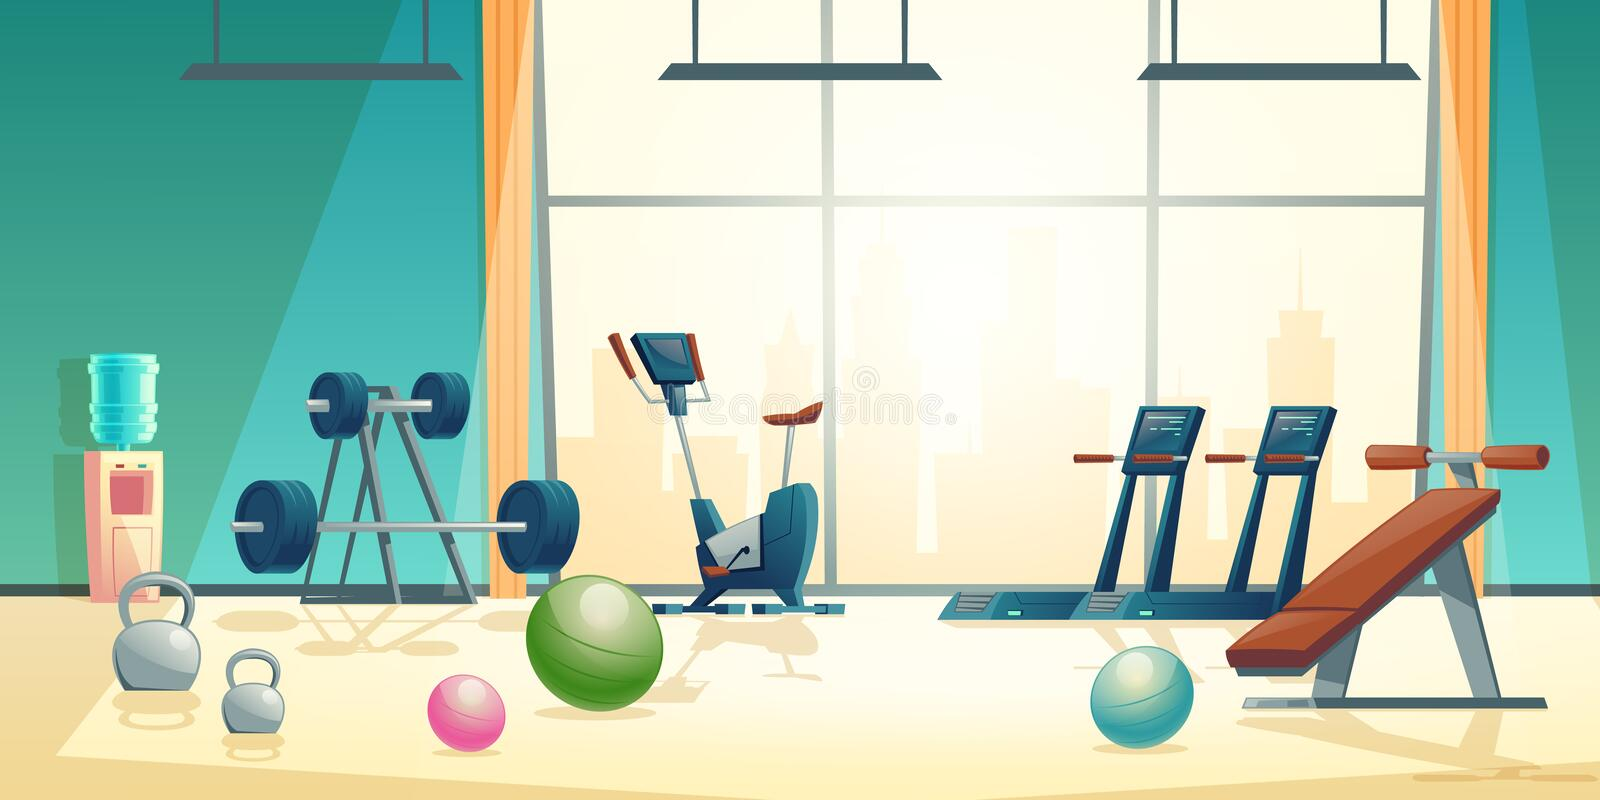 Vector gym background with treadmill, bike training vector illustration